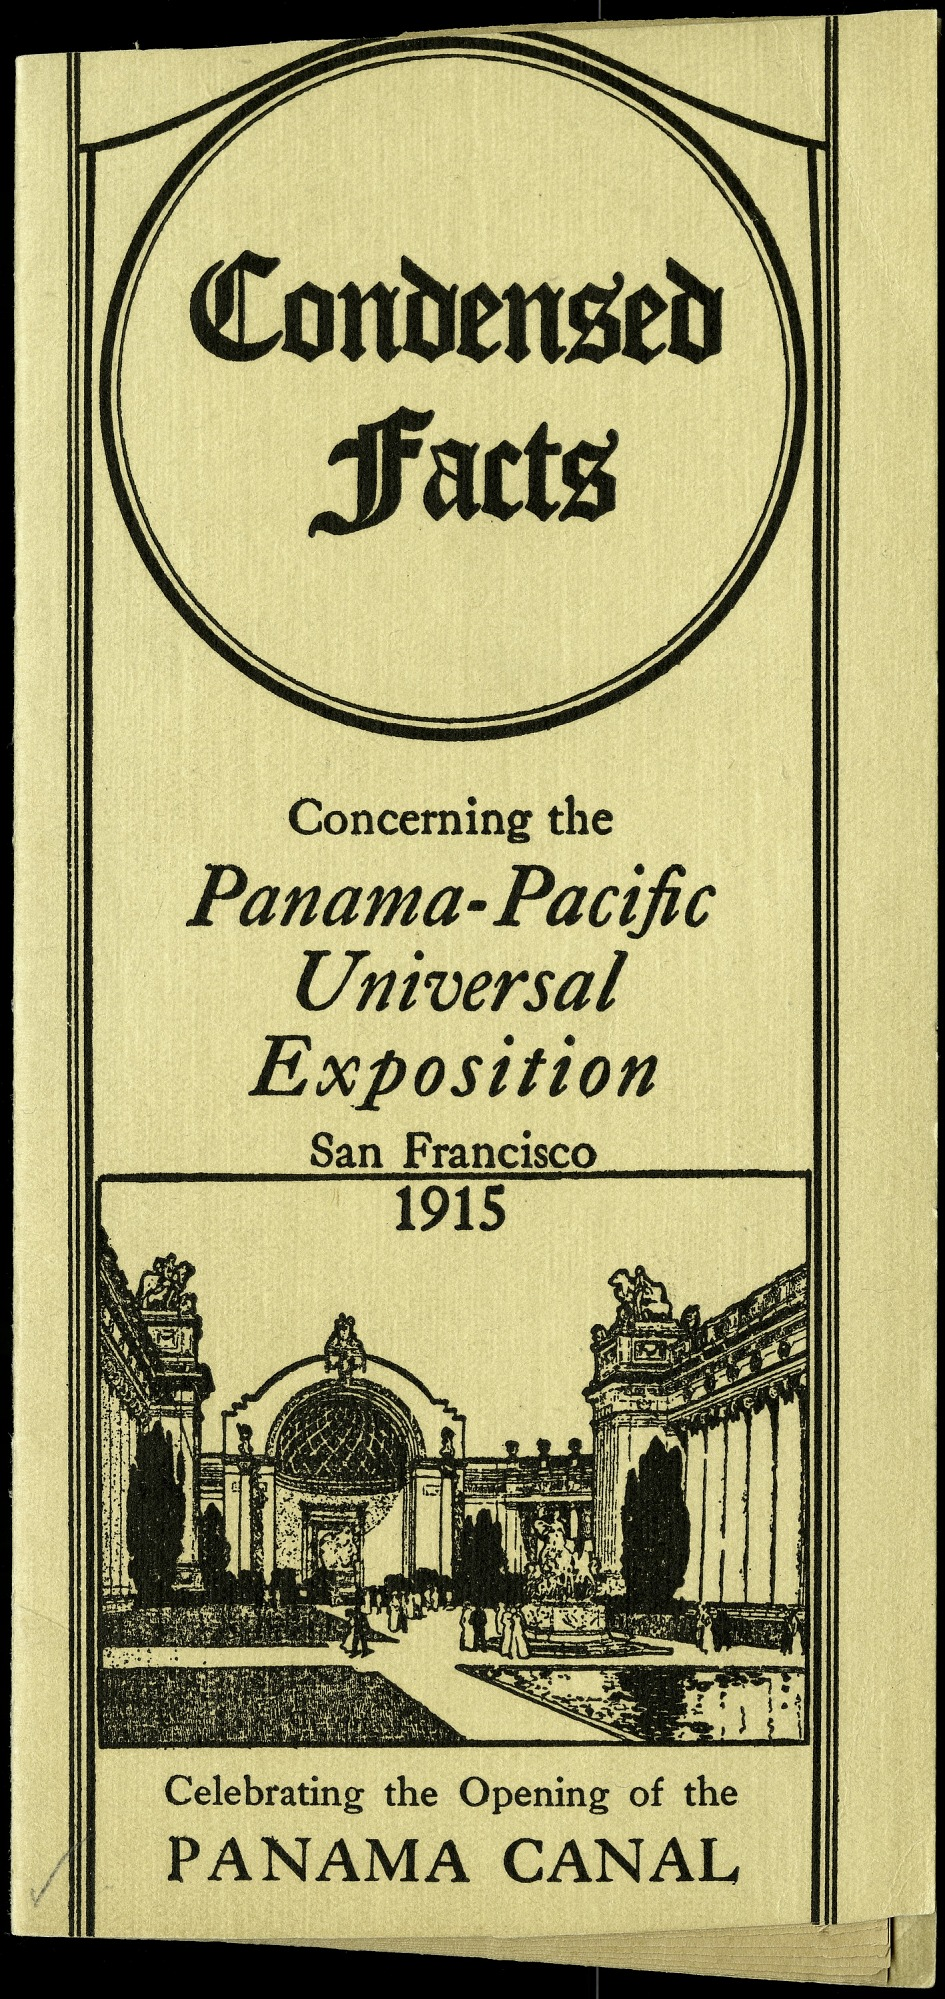 Brochure for the Panama-Pacific International Exposition, by Unknown, 1915, Smithsonian Archives - History Div, SIA2012-2600.